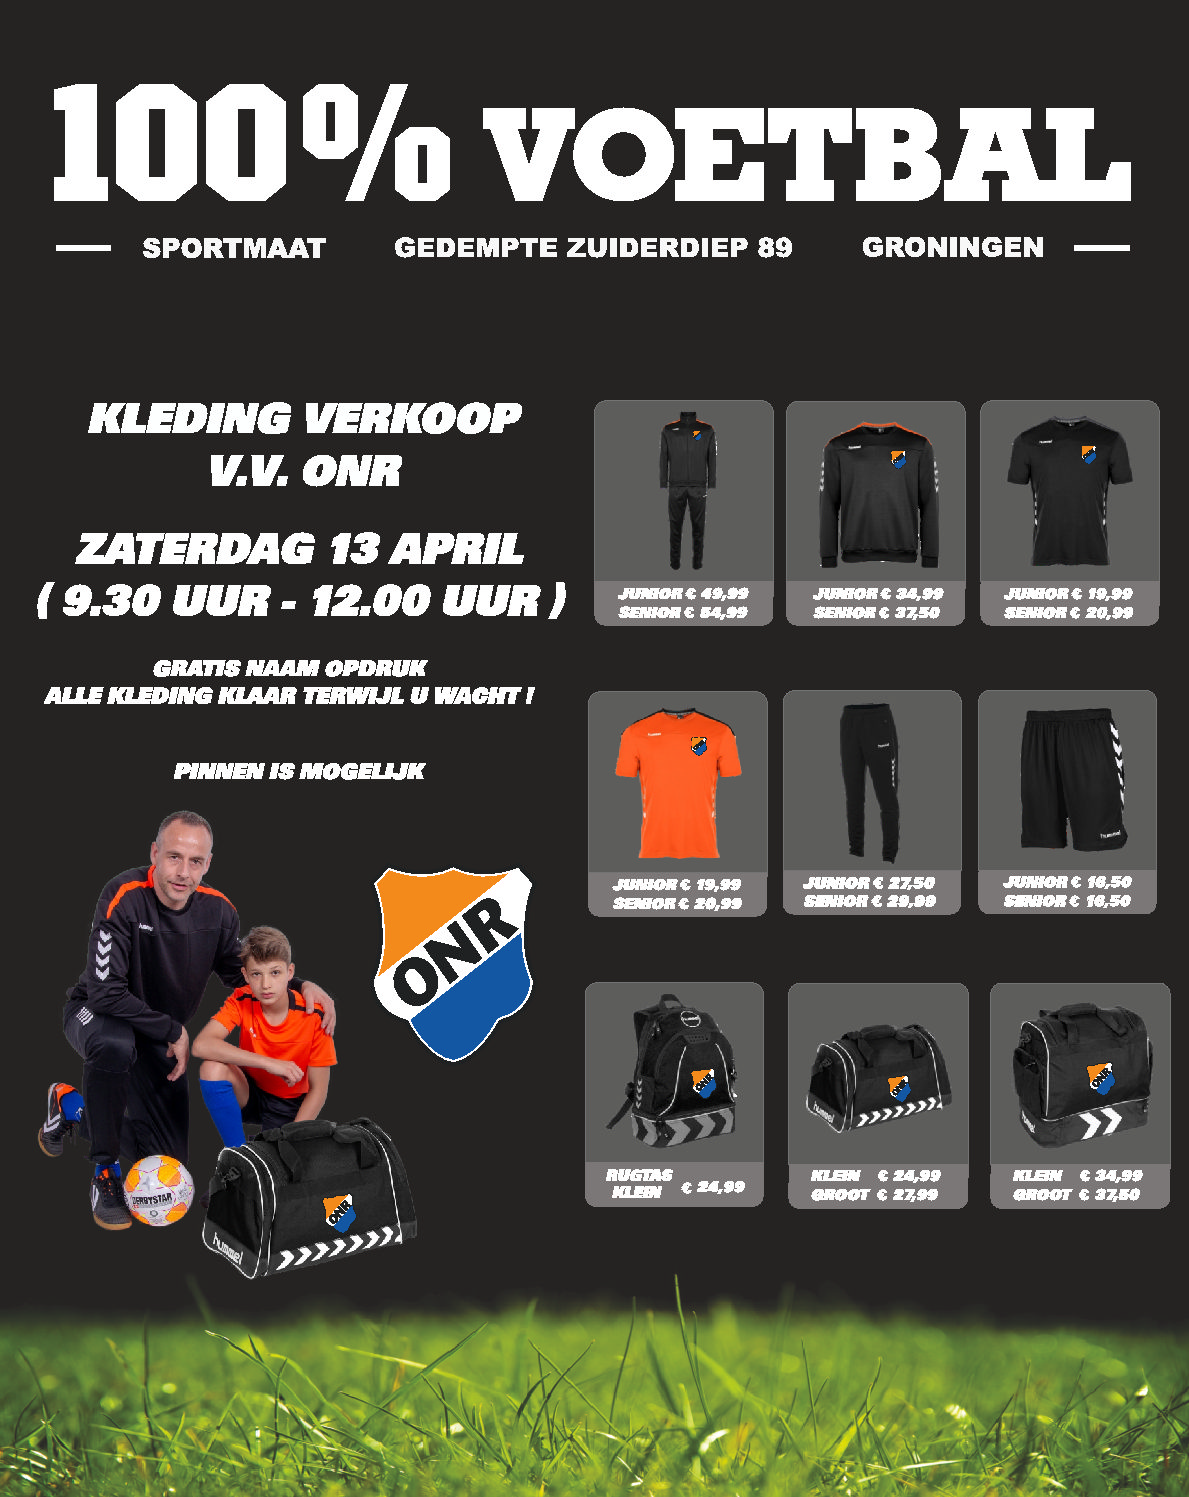 Sportmaat in de kantine zaterdag 13 april